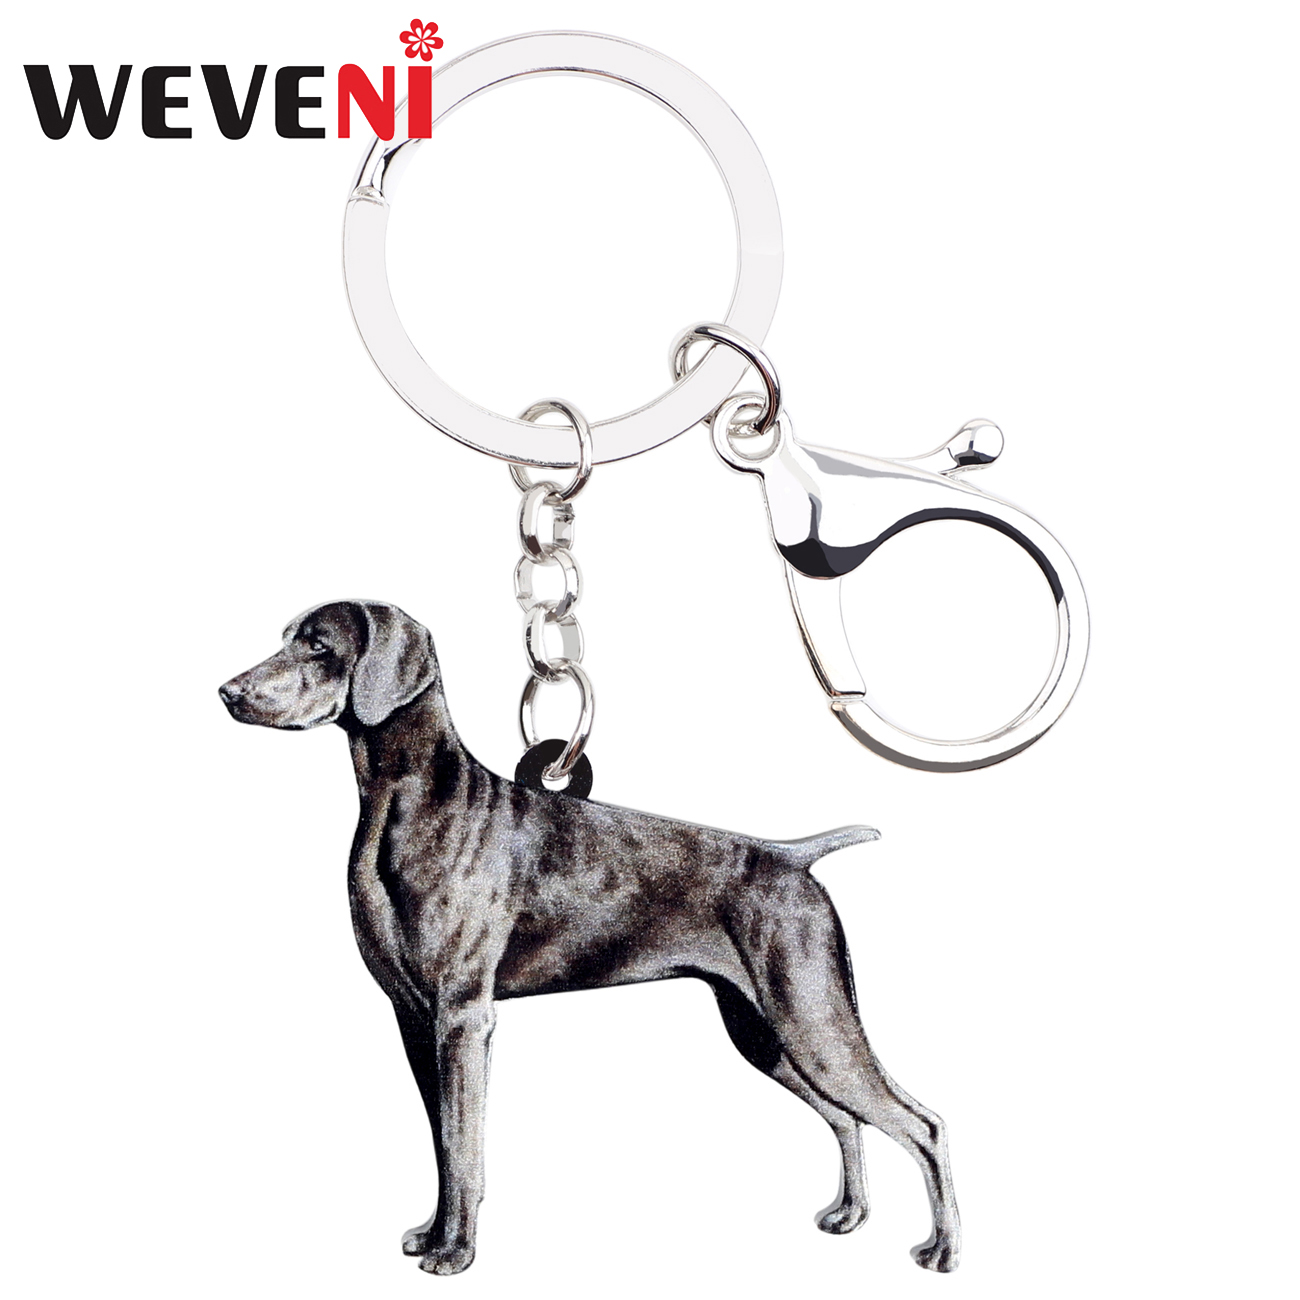 WEVENI Acrylic Weimaraner Dog Key Chain Keychains Holders Animal Jewelry For Women Girls Pet Lovers Gift Bag Car Pendant Charms